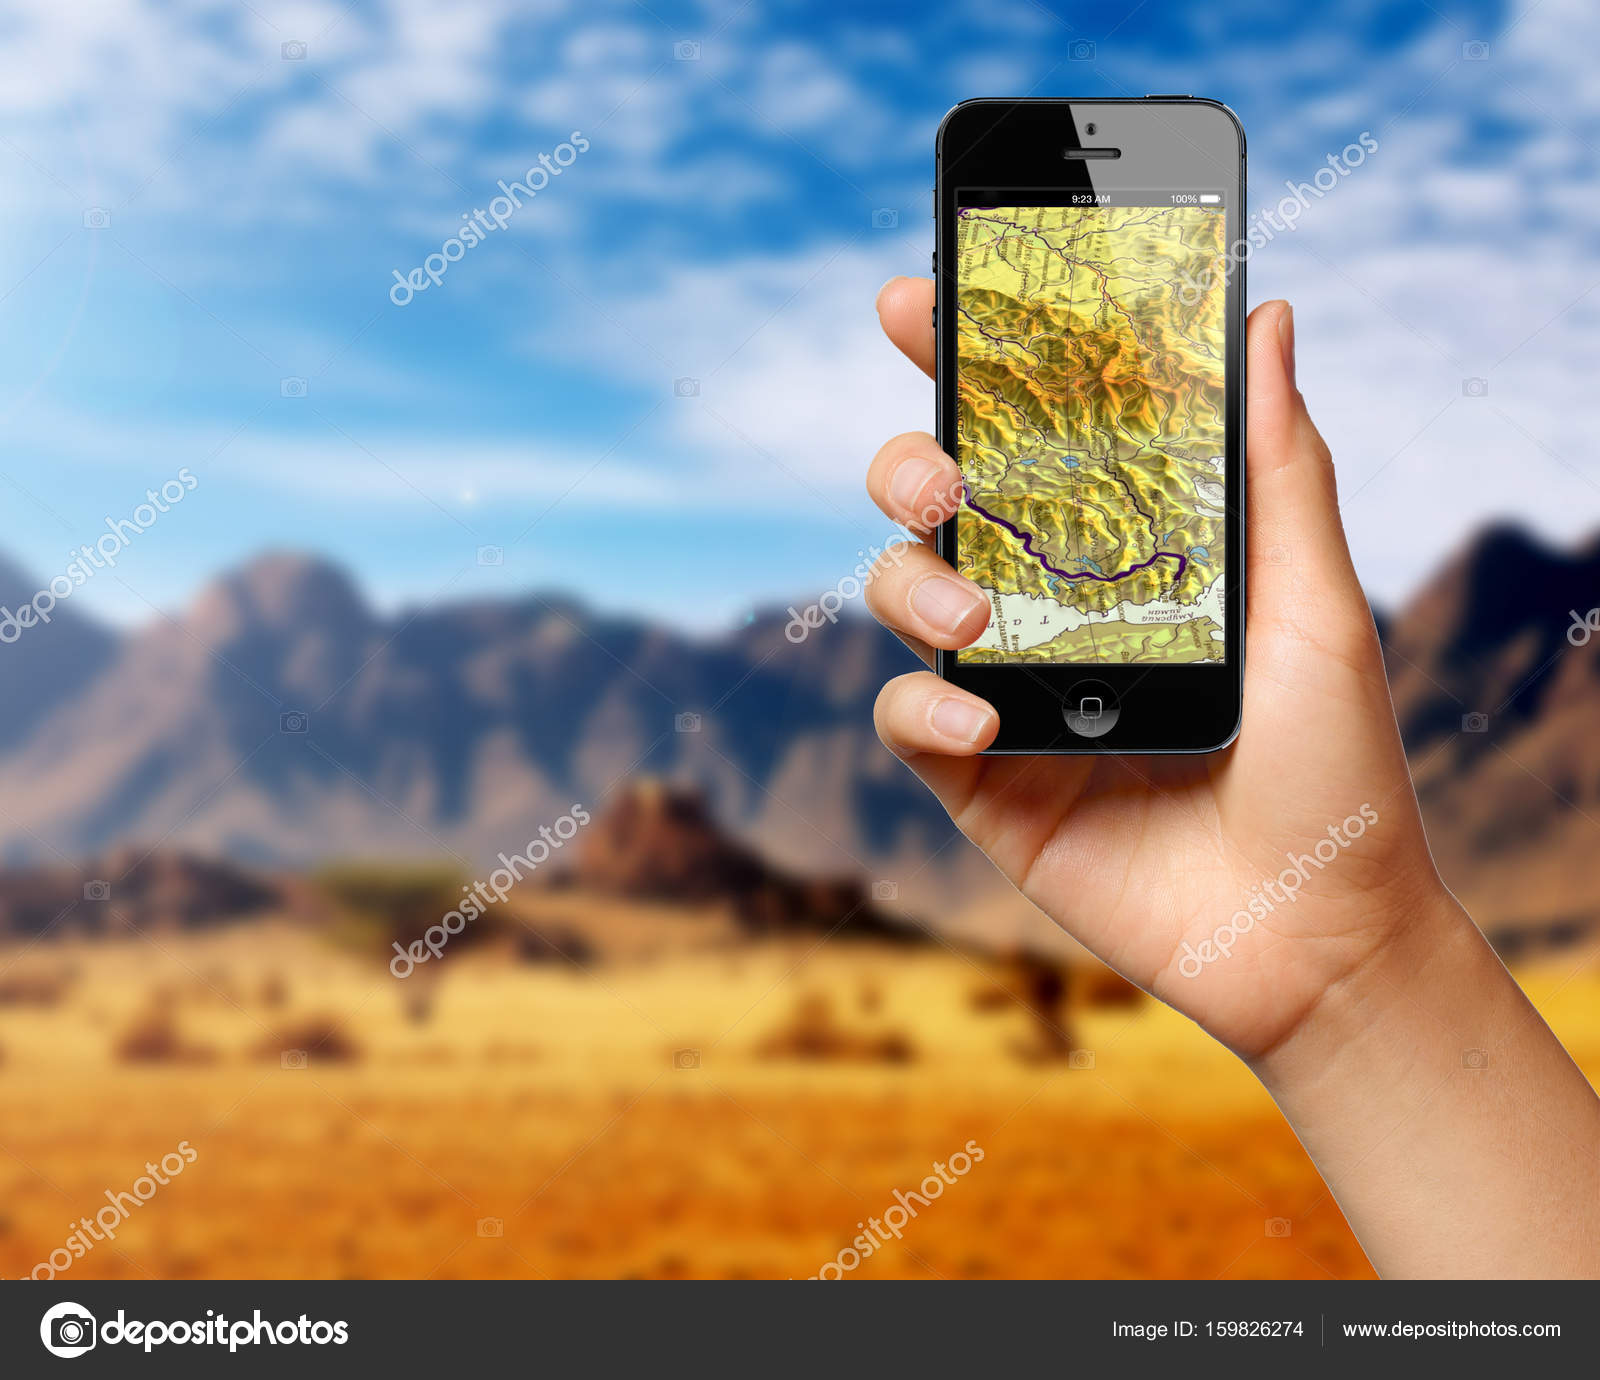 Application of satellite navigation on your phone to find a route